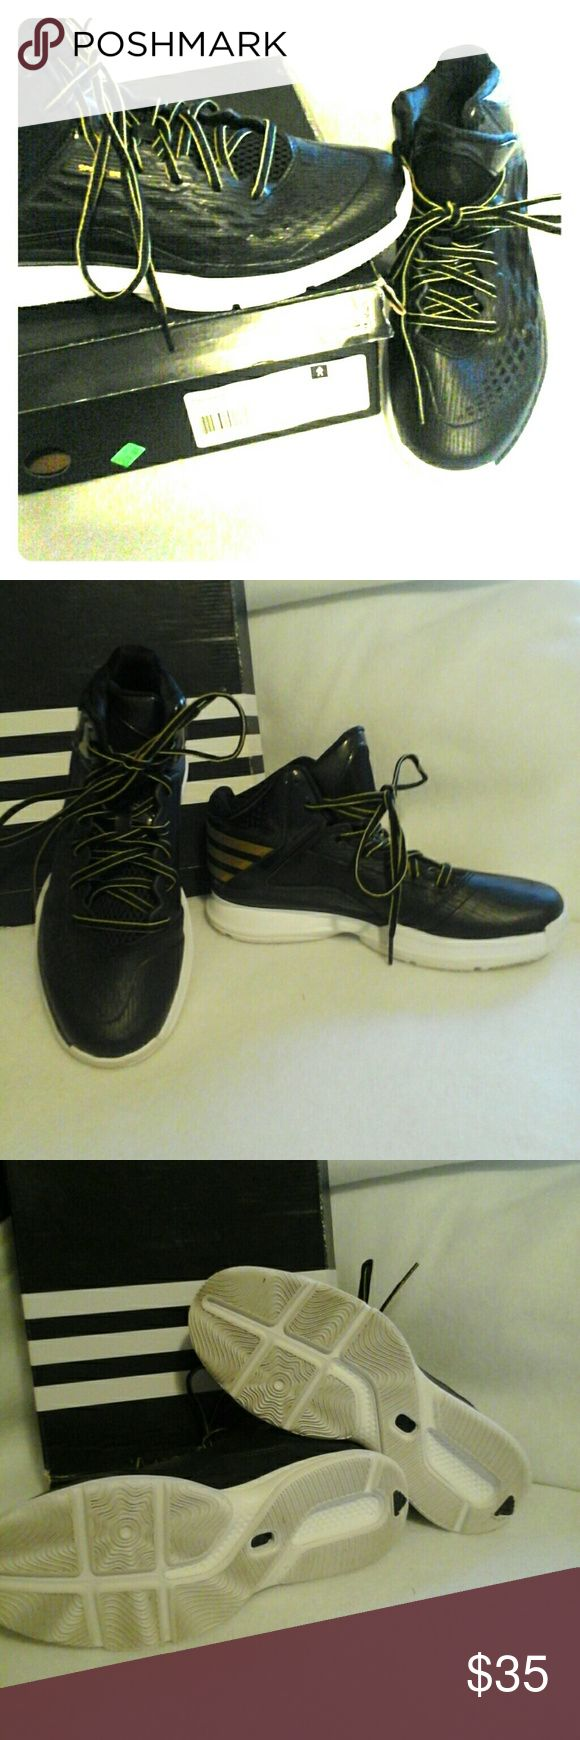 Adidas Basketball Shoes Transcend Adidas Hi Tops Black and Gold. Boys Size 5. Never worn outside of the house. Adidas Shoes